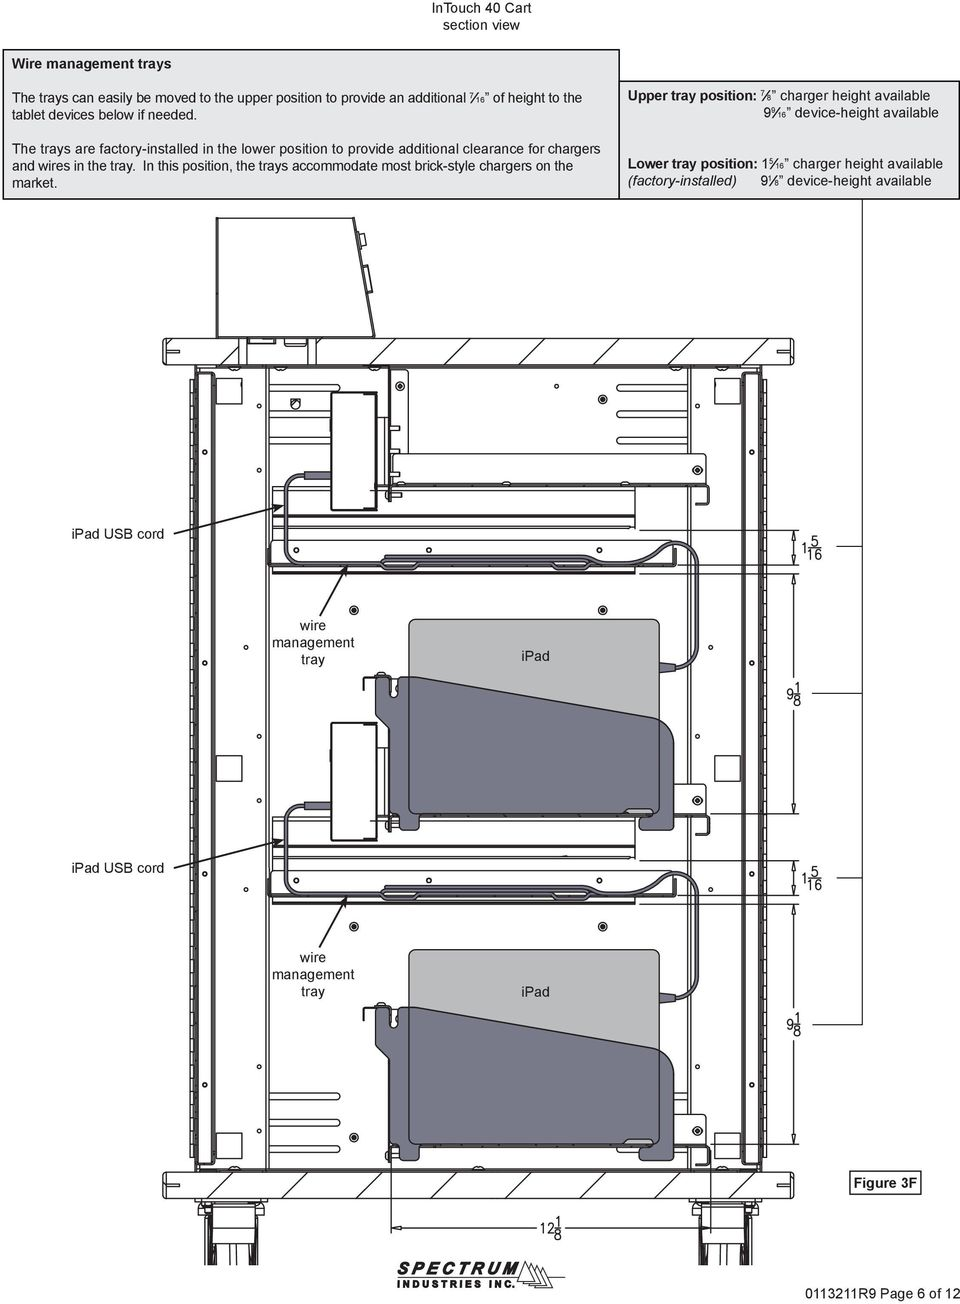 Owner S Manual Intouch 40 Cart With Sync Charge System For Ipads Usb Cable Wiring Diagram Together Of Ipad Cord Wire Management Tray Figure 3f R9 Page 6 12 In This Position The Trays Accommodate Most Brick Style Chargers On Market